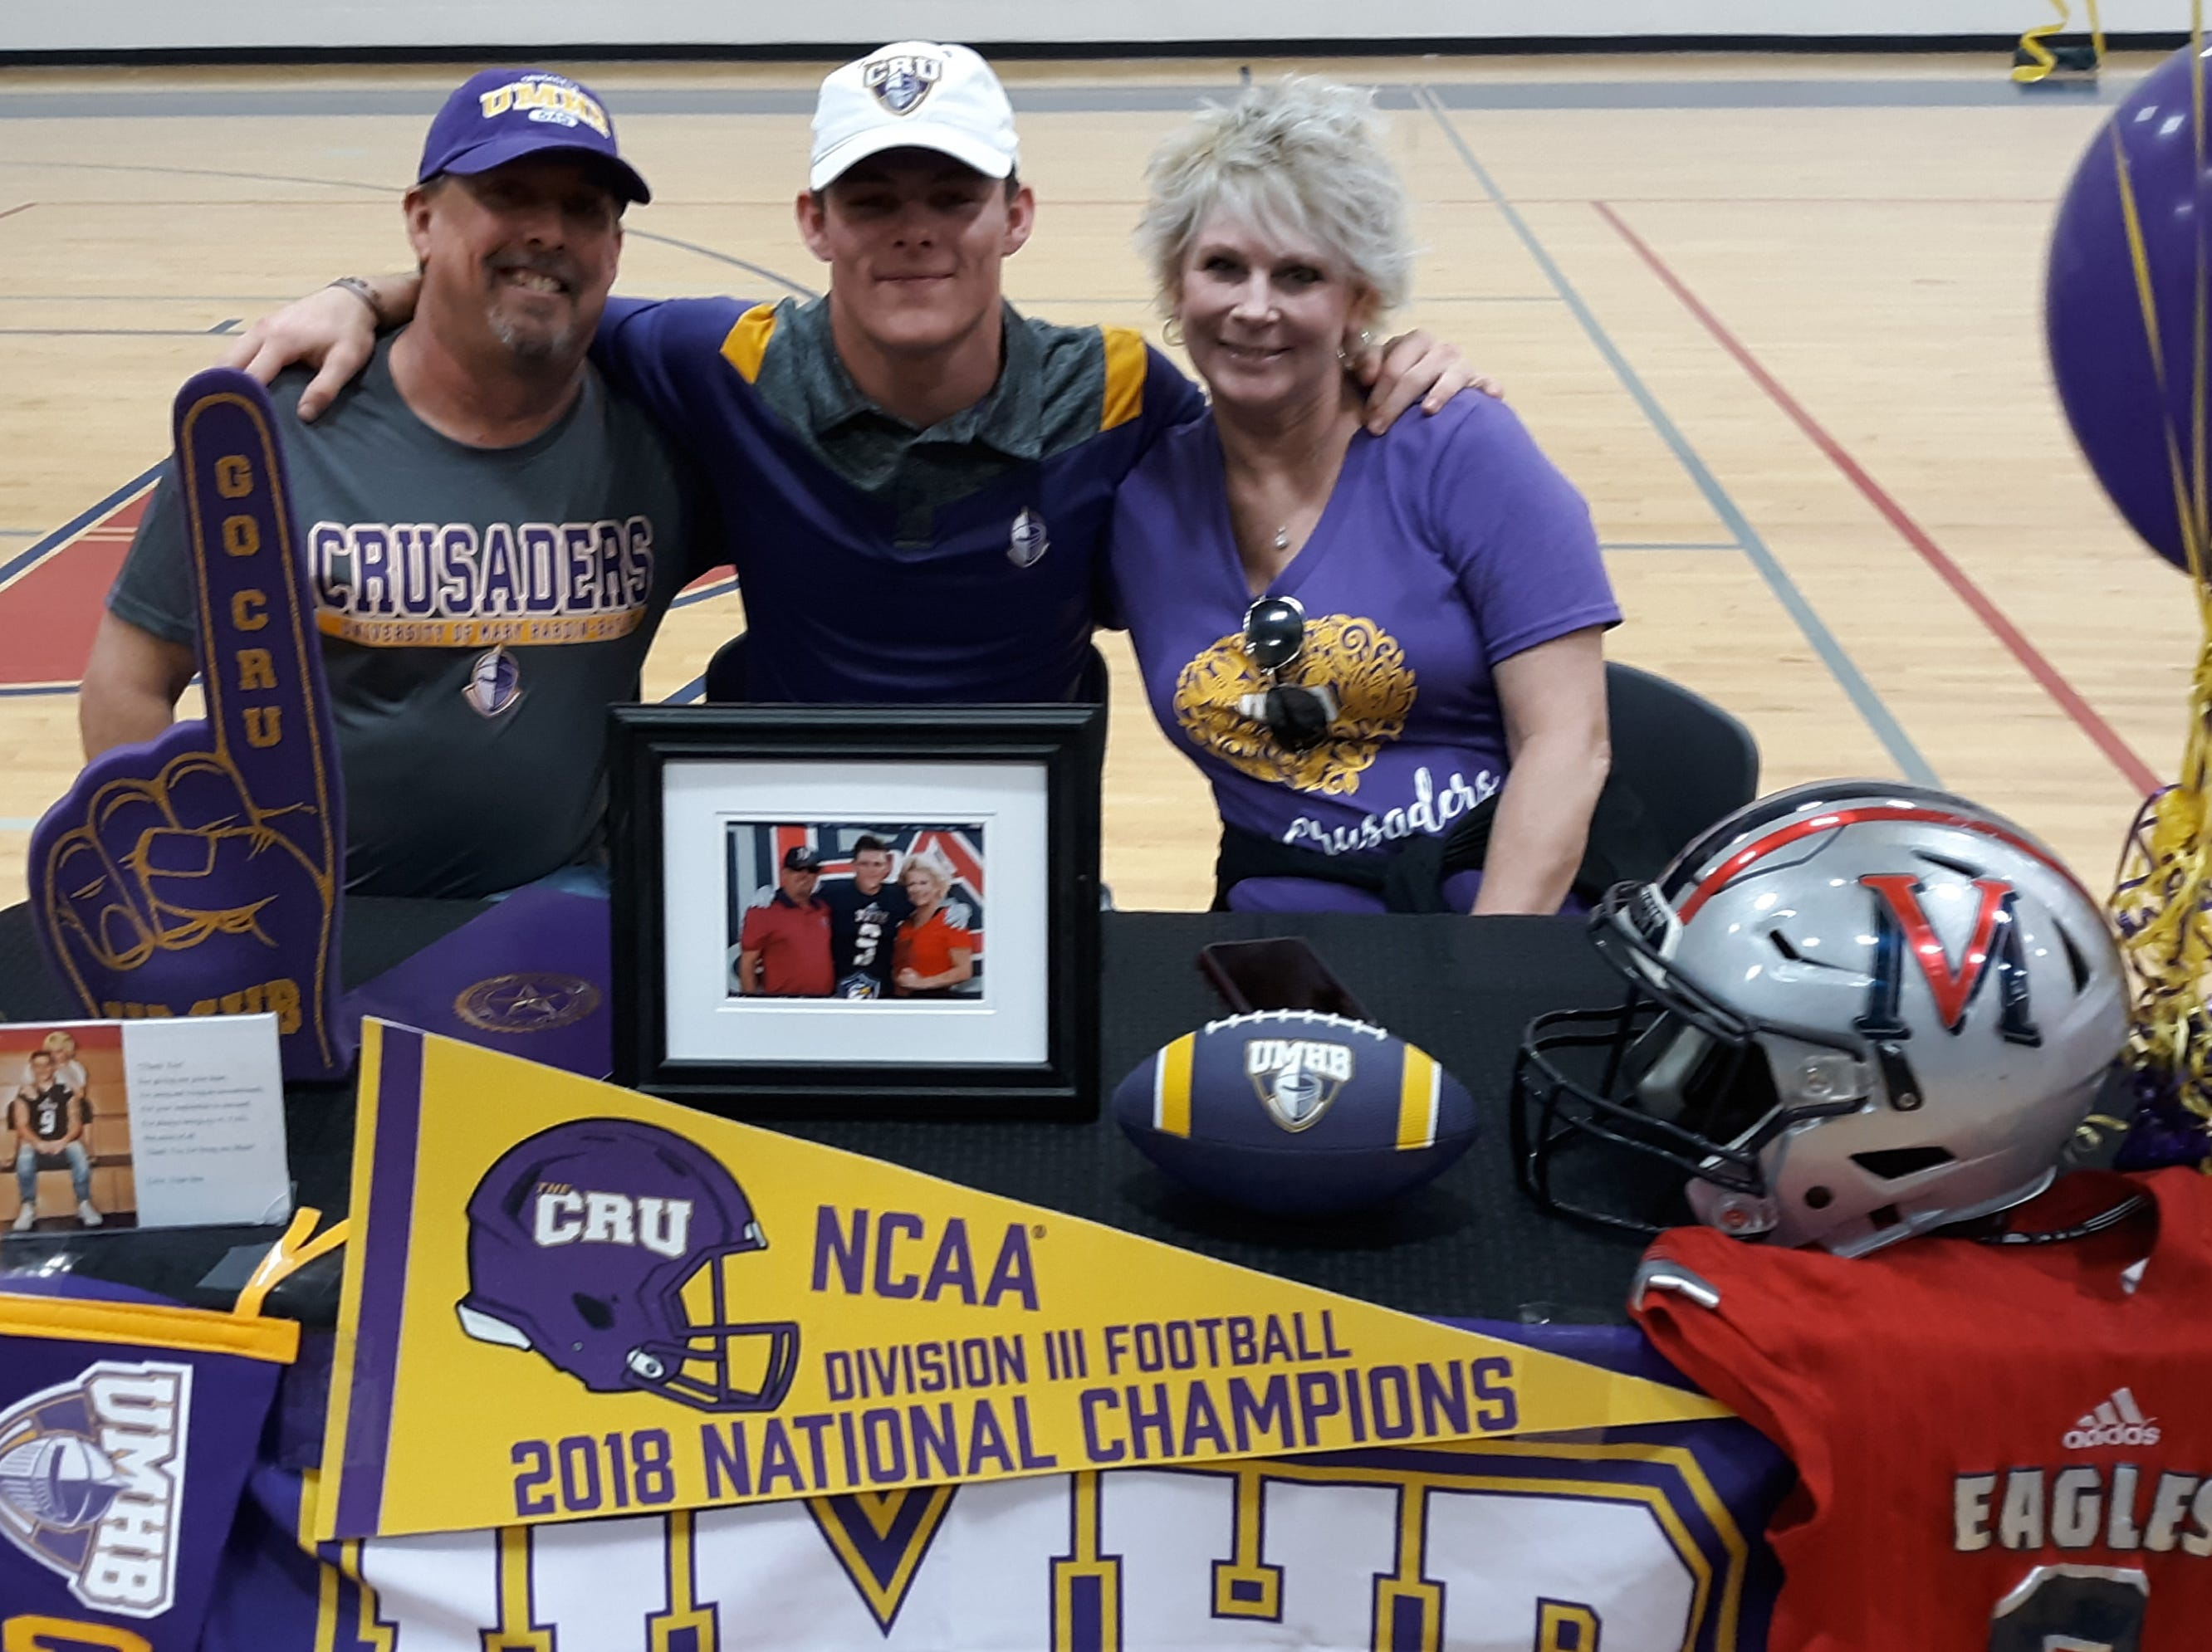 Veterans Memorial defensive back Davis Horne finalized his commitment to NCAA Division III Mary Hardin-Baylor. Horne was a first team all-district selection and was one of the area's best at blocking kicks.